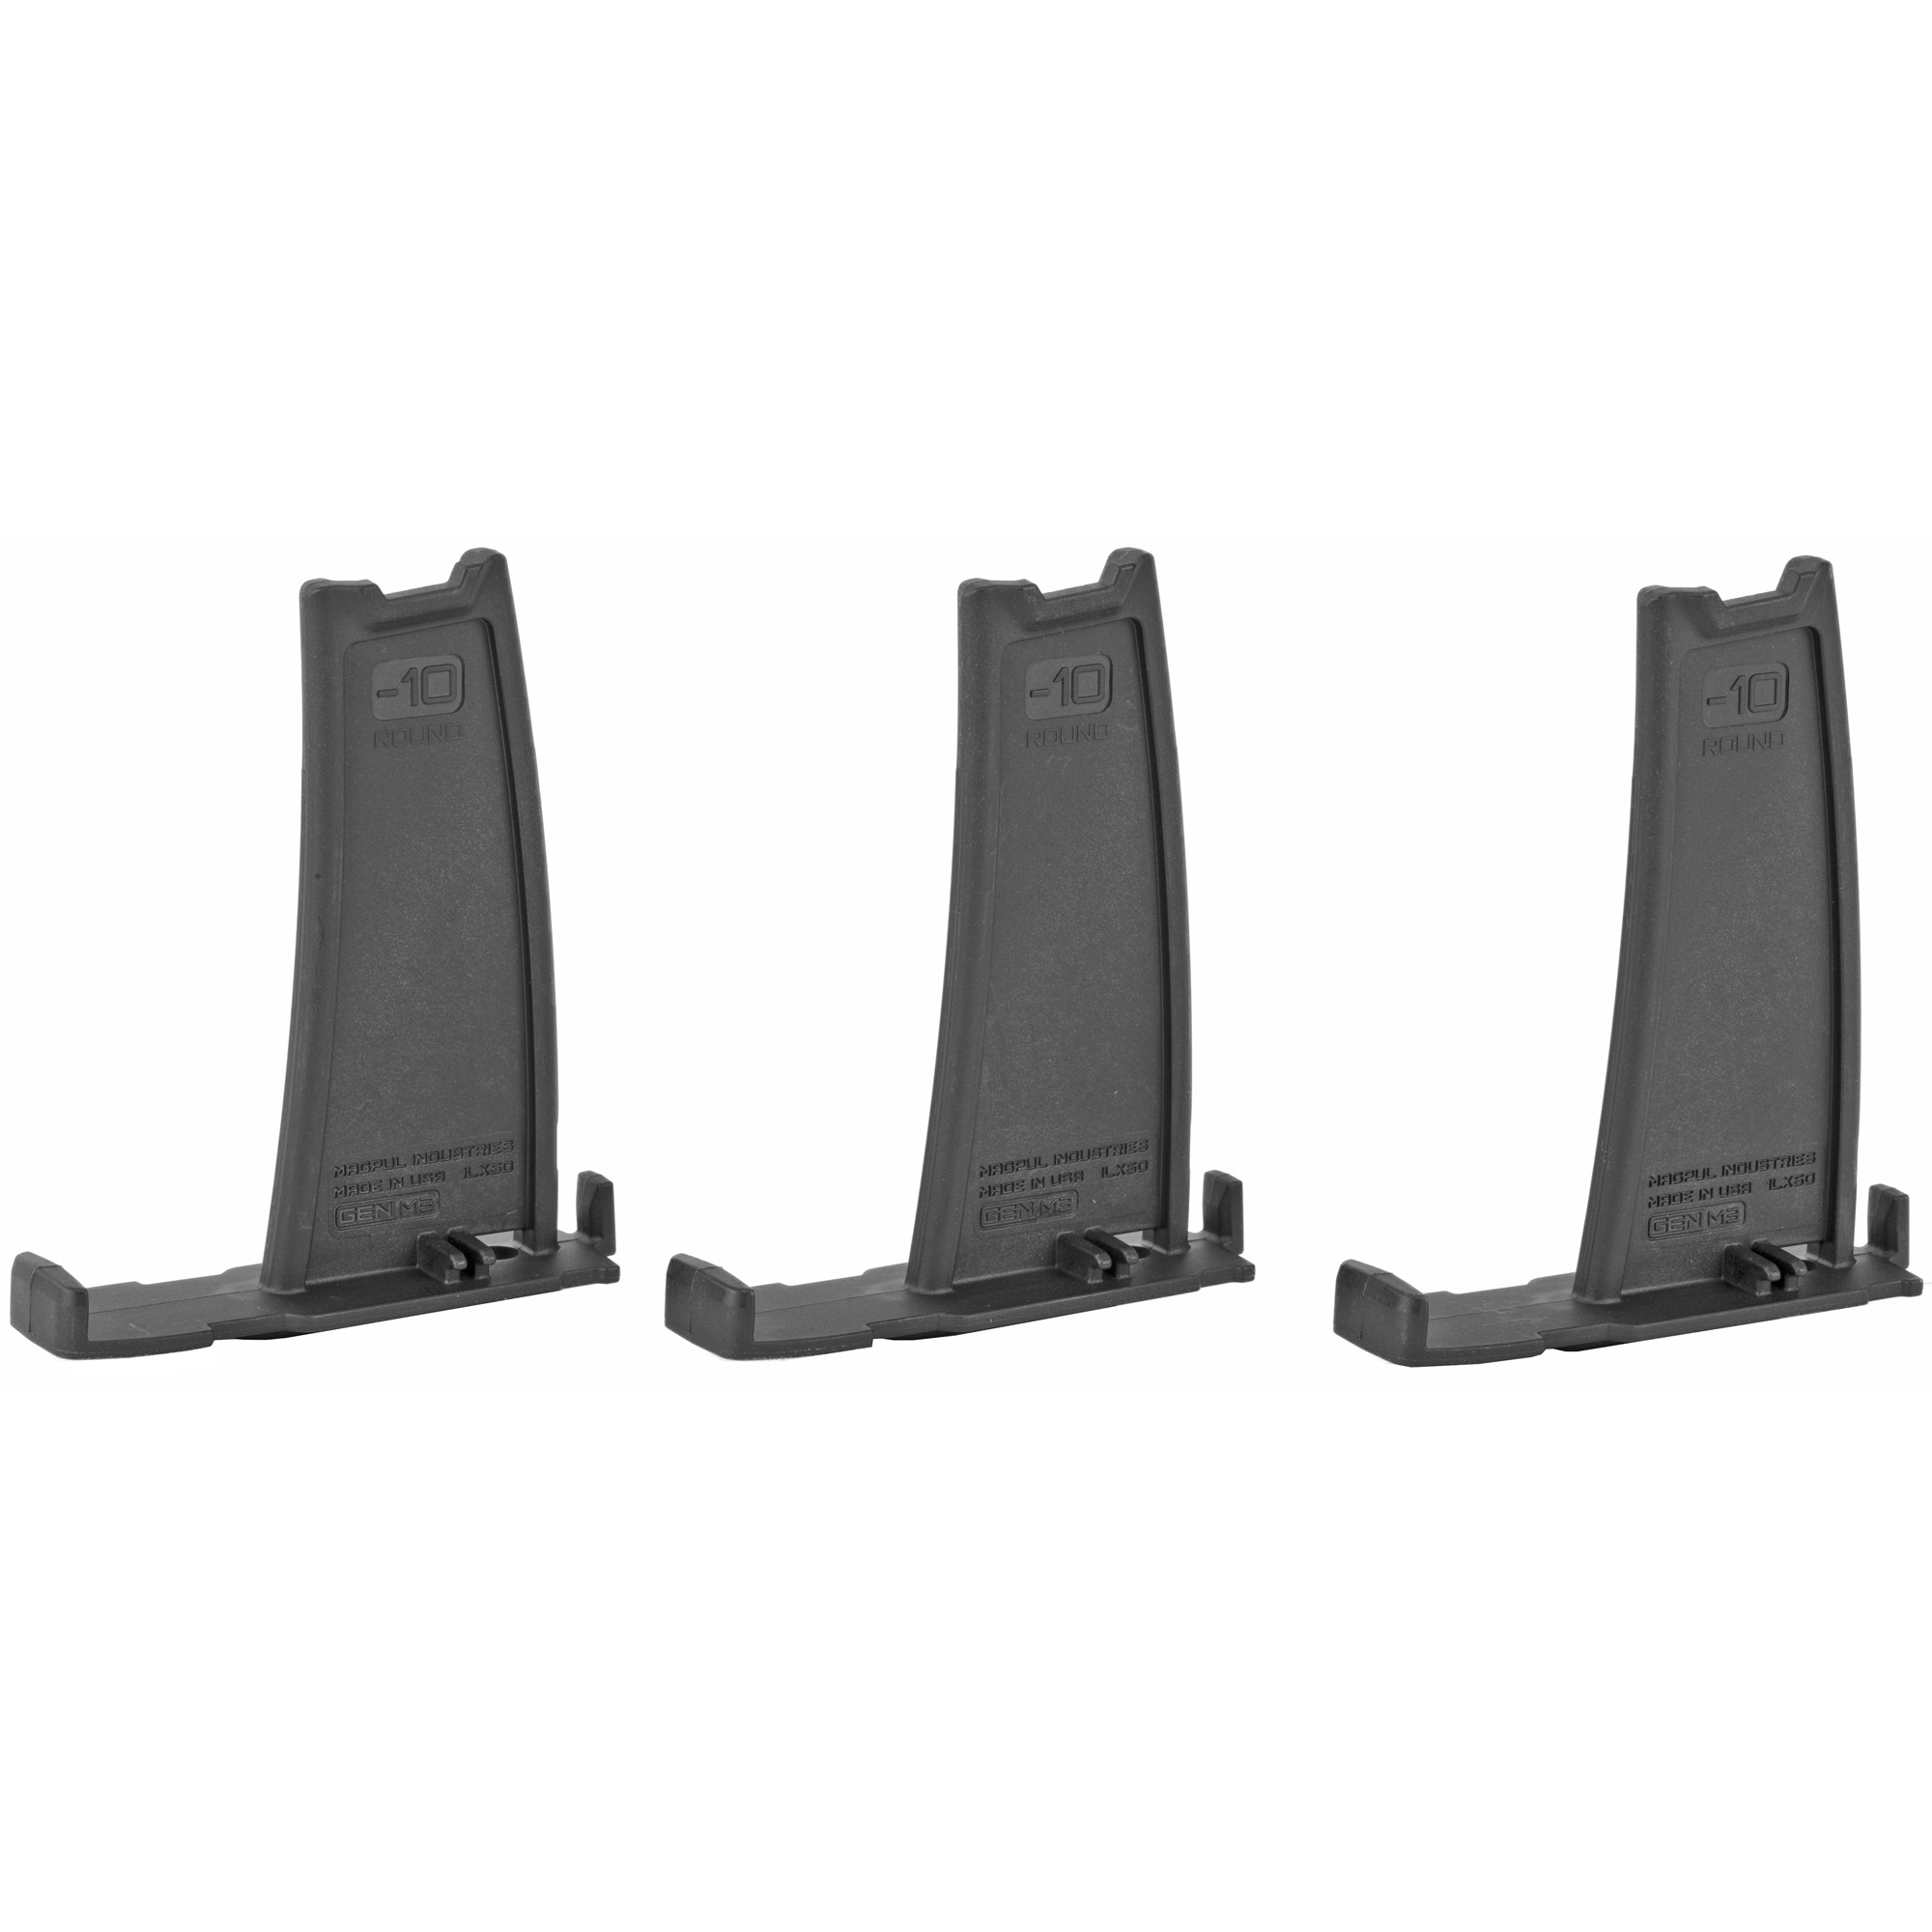 """The PMAG Minus 10 Round Limiter installs in 10"""" 20"""" or 25 round 7.62x51 LR/SR GEN M3 PMAG bodies"""" reducing the magazine capacity by ten rounds. Designed for sporting and hunting applications"""" installation of the Limiter is simple"""" tool-less"""" and requires no permanent modification of the magazine body."""